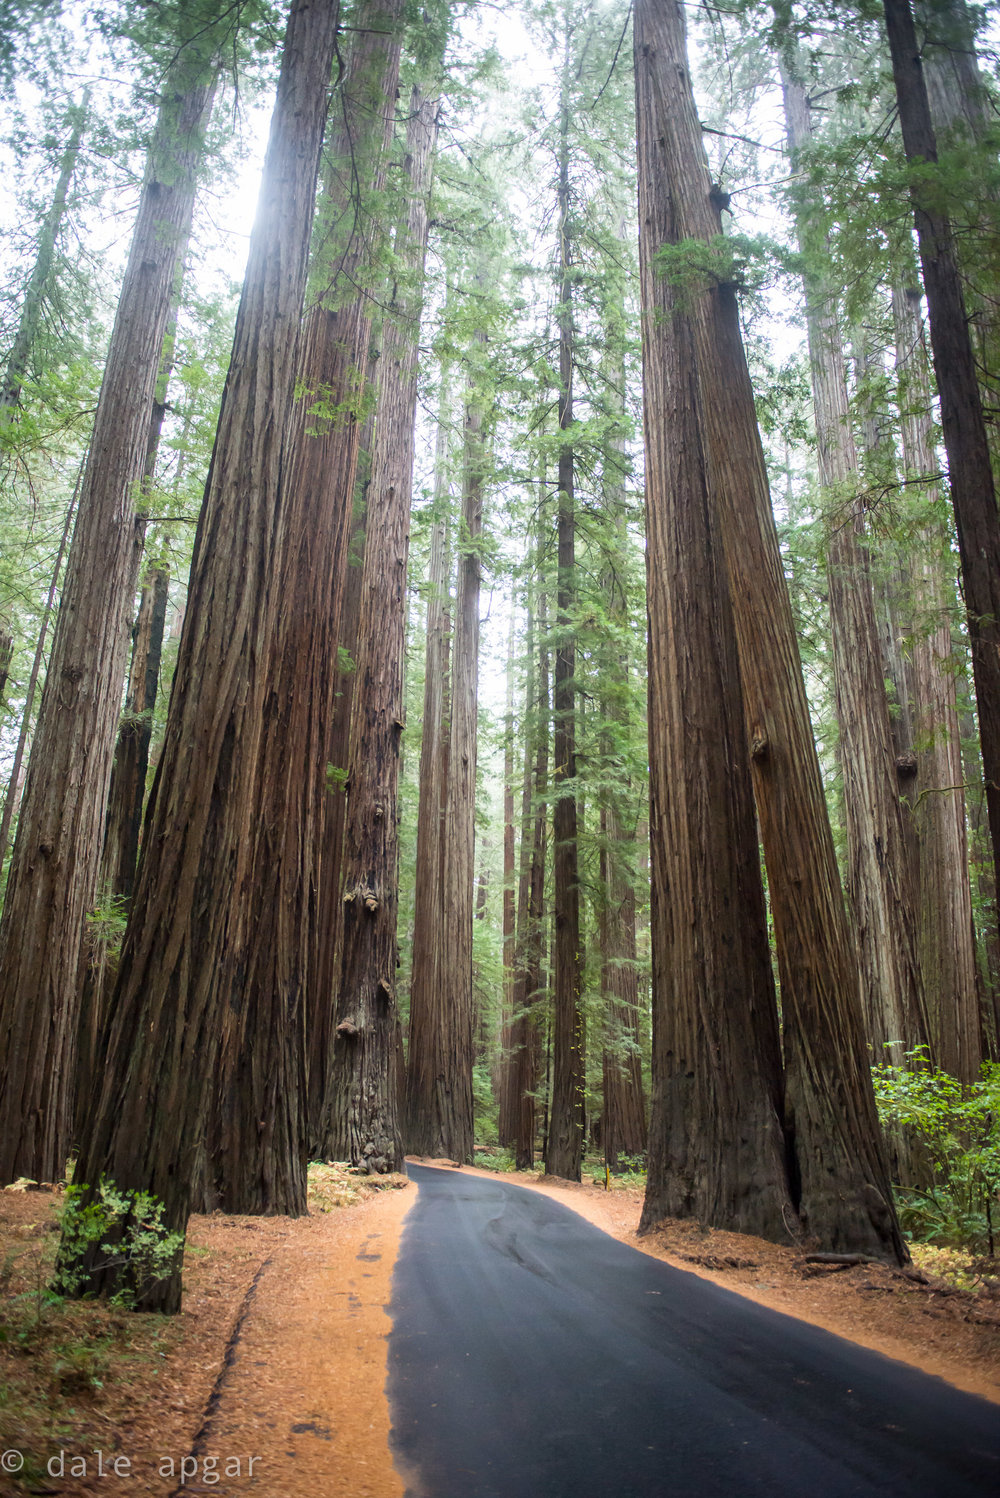 The largest swath of 'Old Growth' Redwoods, brought to you by Nelson Rockefeller. 98% of the original Redwoods in the US were harvested, meaning most of what we see today are infants compared to the giants that used to occupy our western coast.